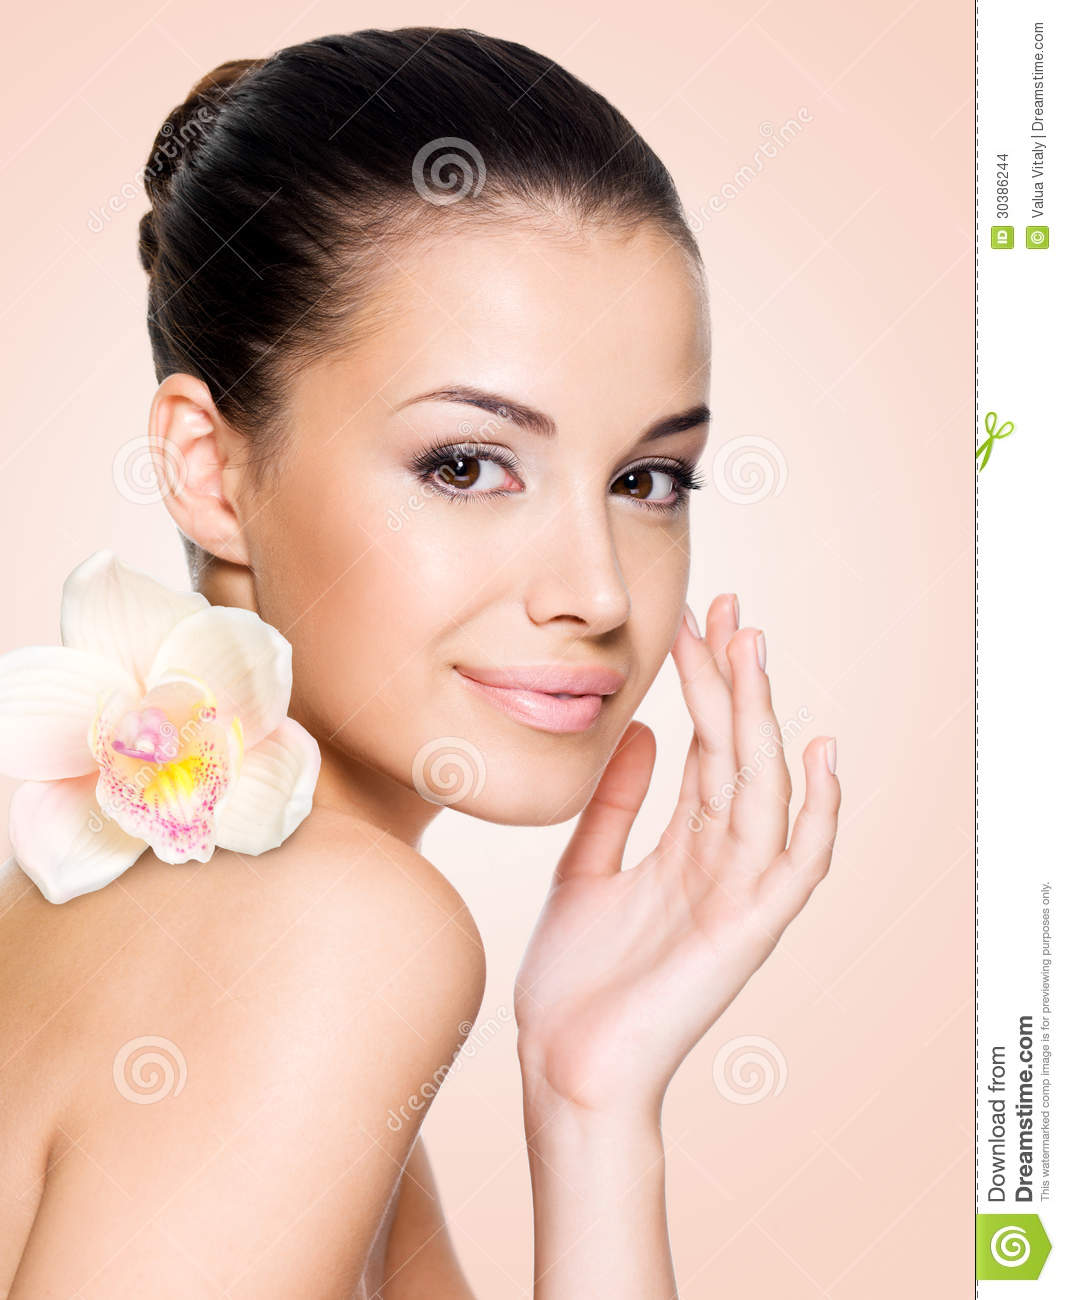 Healthy Skin Care: Beautiful Smiling Woman With Healthy Skin Stock Photo